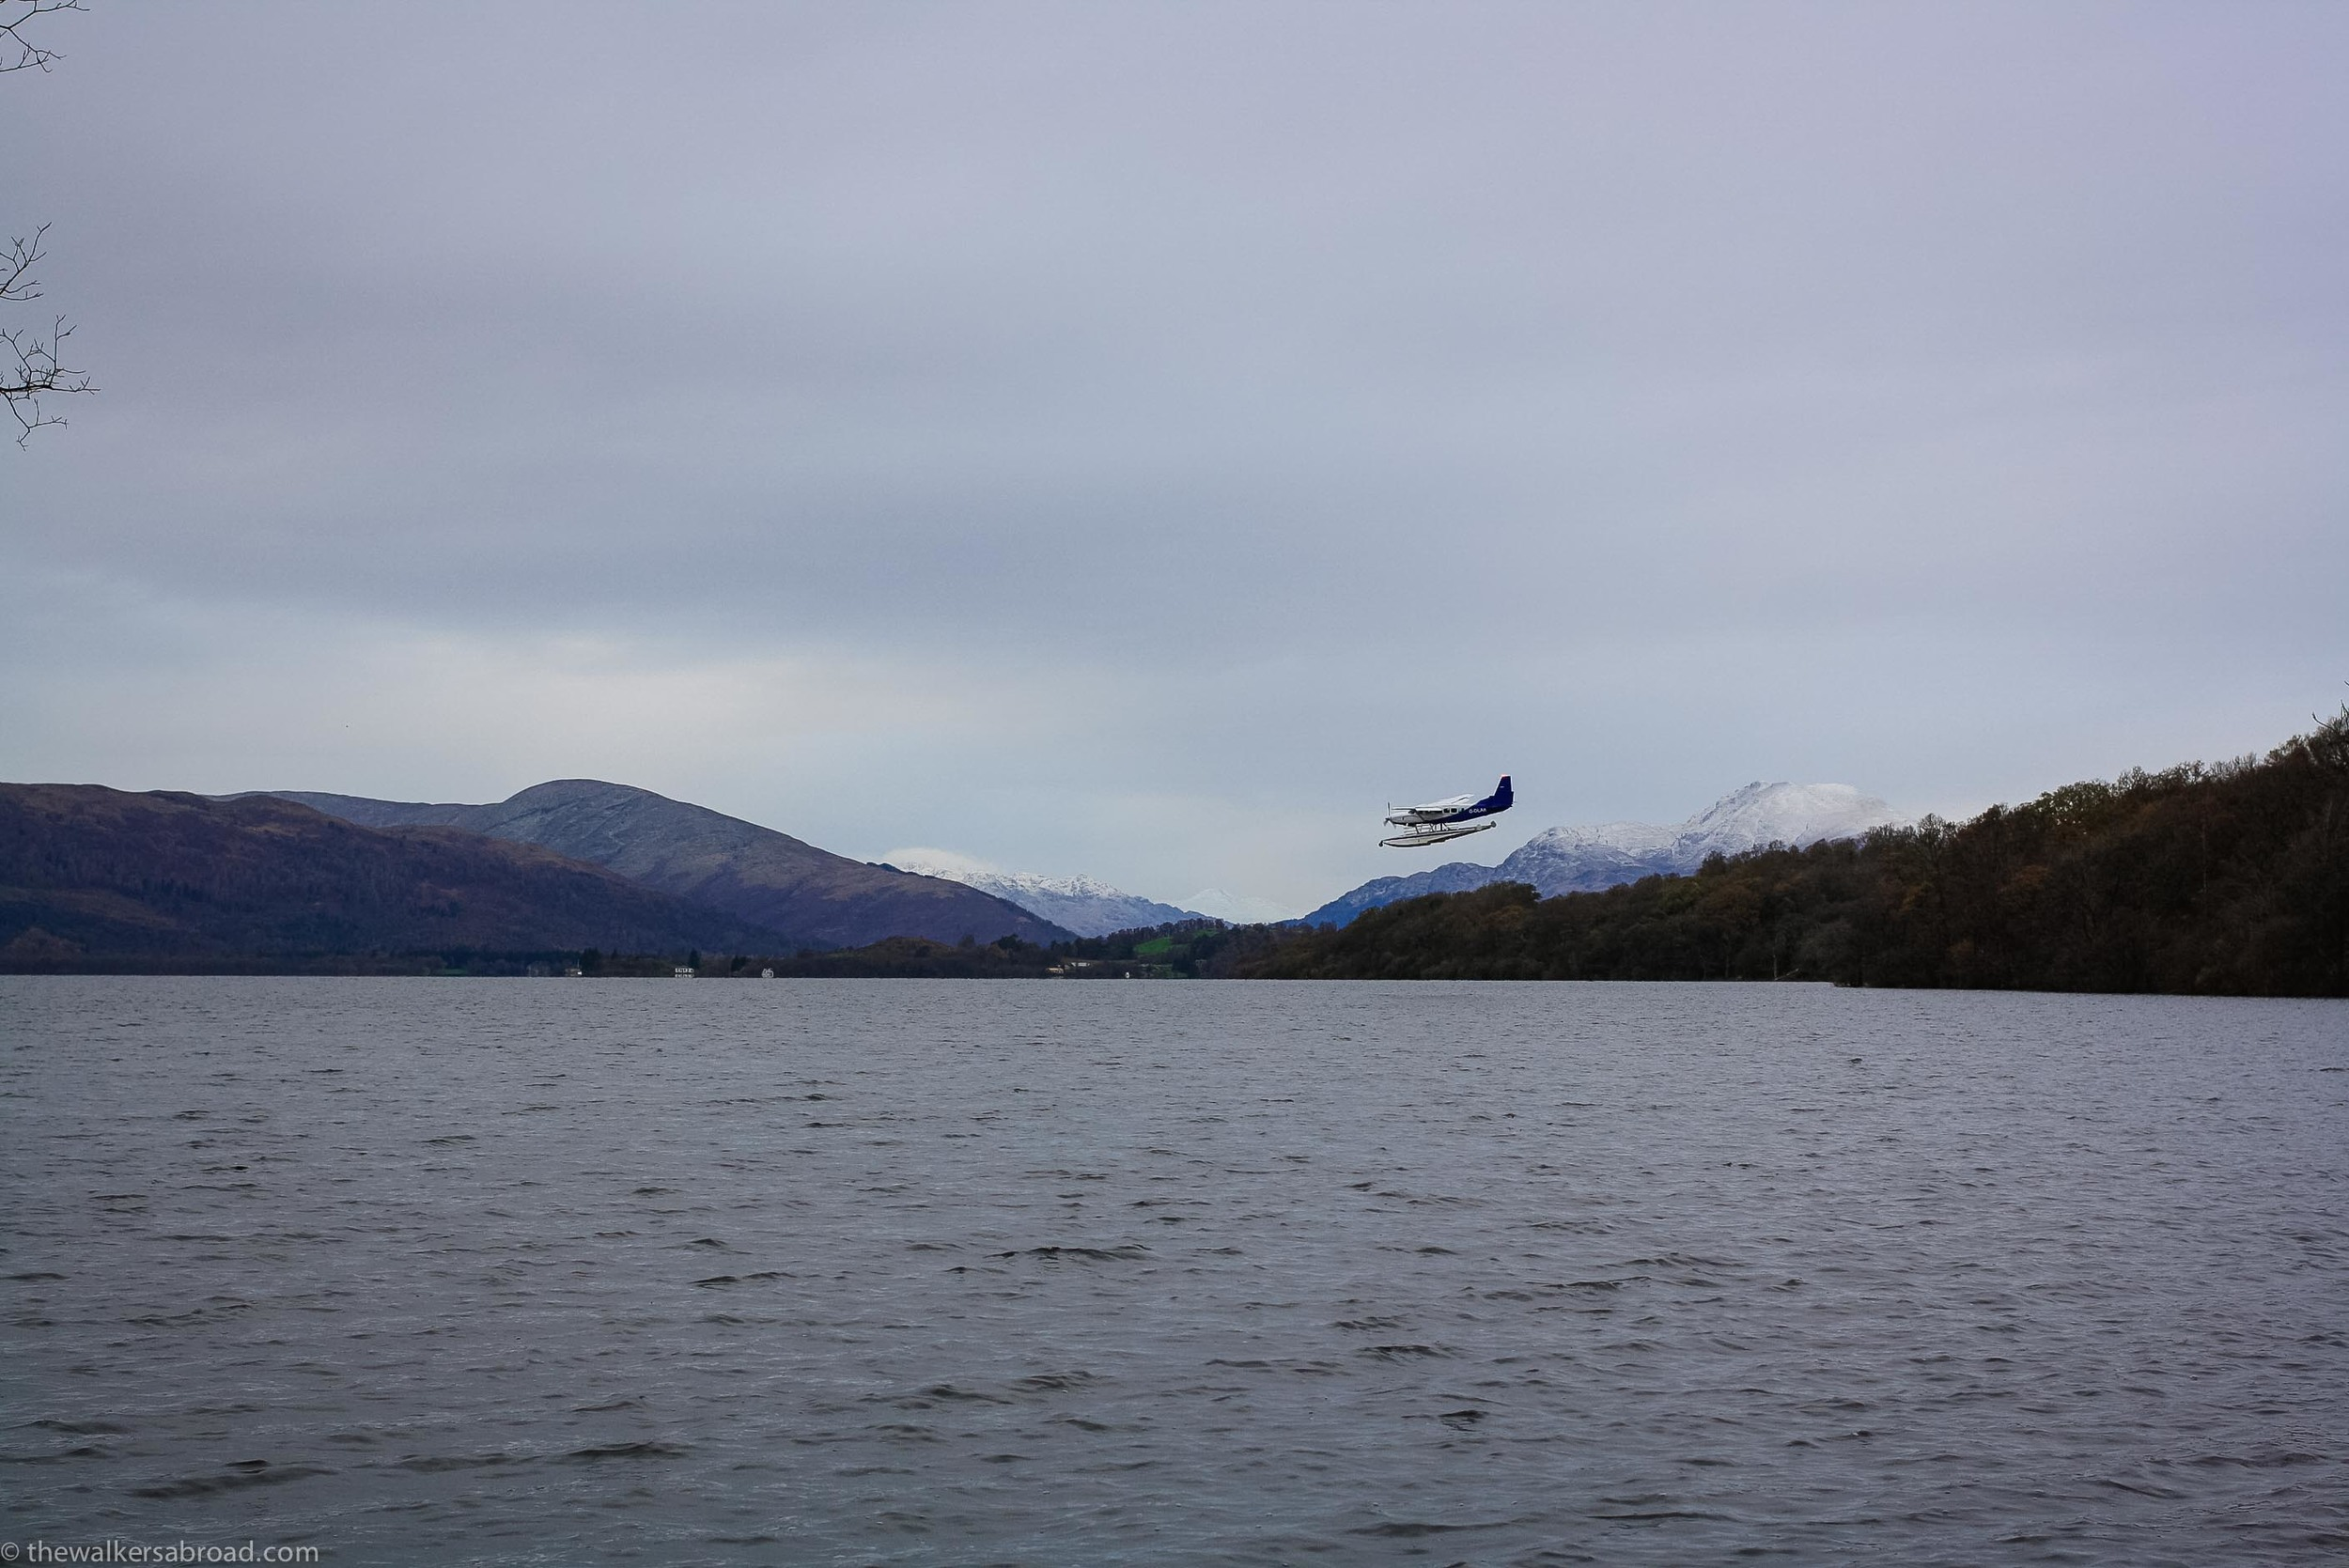 Ben Lomond (larger mountain on the right) was covered in snow. I snapped this picture just as the airplane was prepping for it's landing.